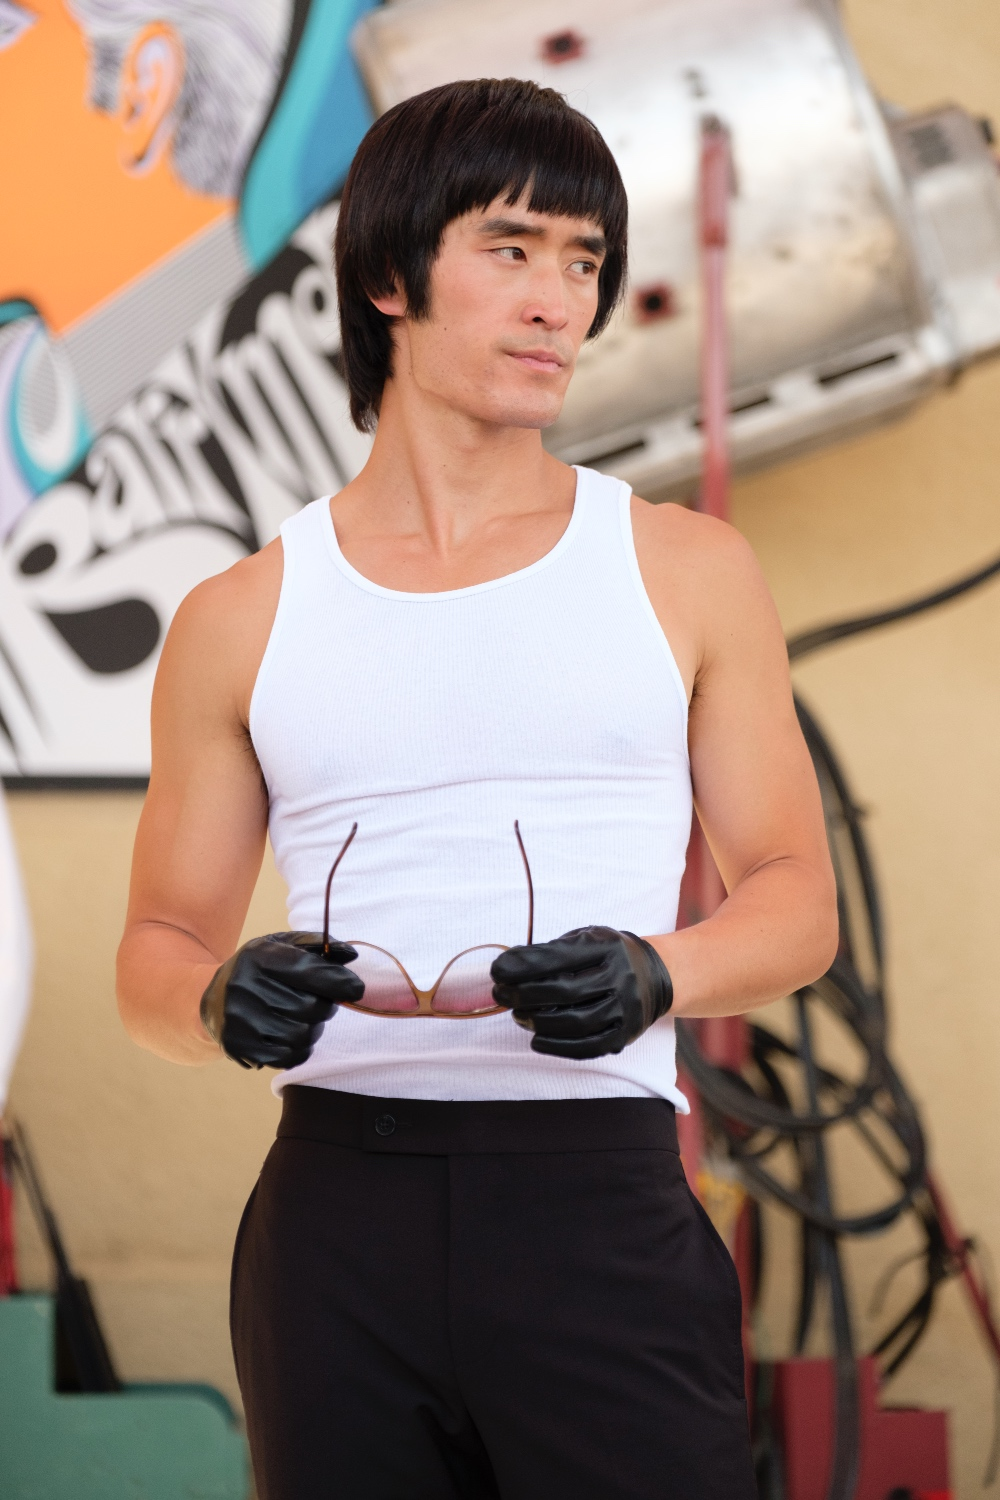 Image Credit: Andrew Cooper / Sony Pictures — Feat. Mike Moh as Bruce Lee